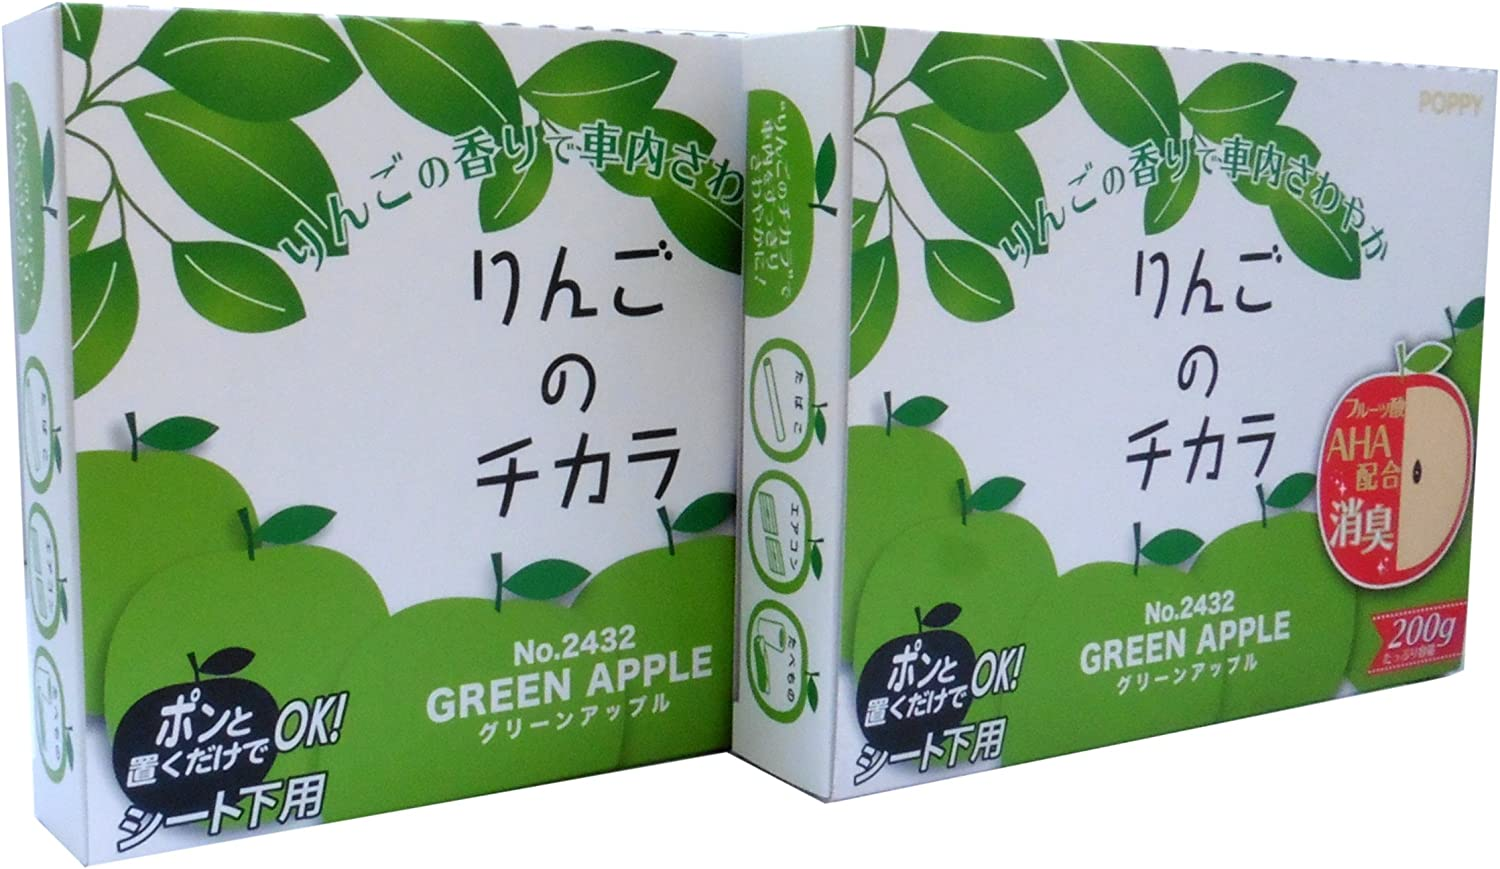 Diax - YirehStore Super Apple Under Seat Air Freshener - 2 Packs Green Apple Scent - Premium and Long-Lasting Fragrance for Cars and Home/Office Rooms